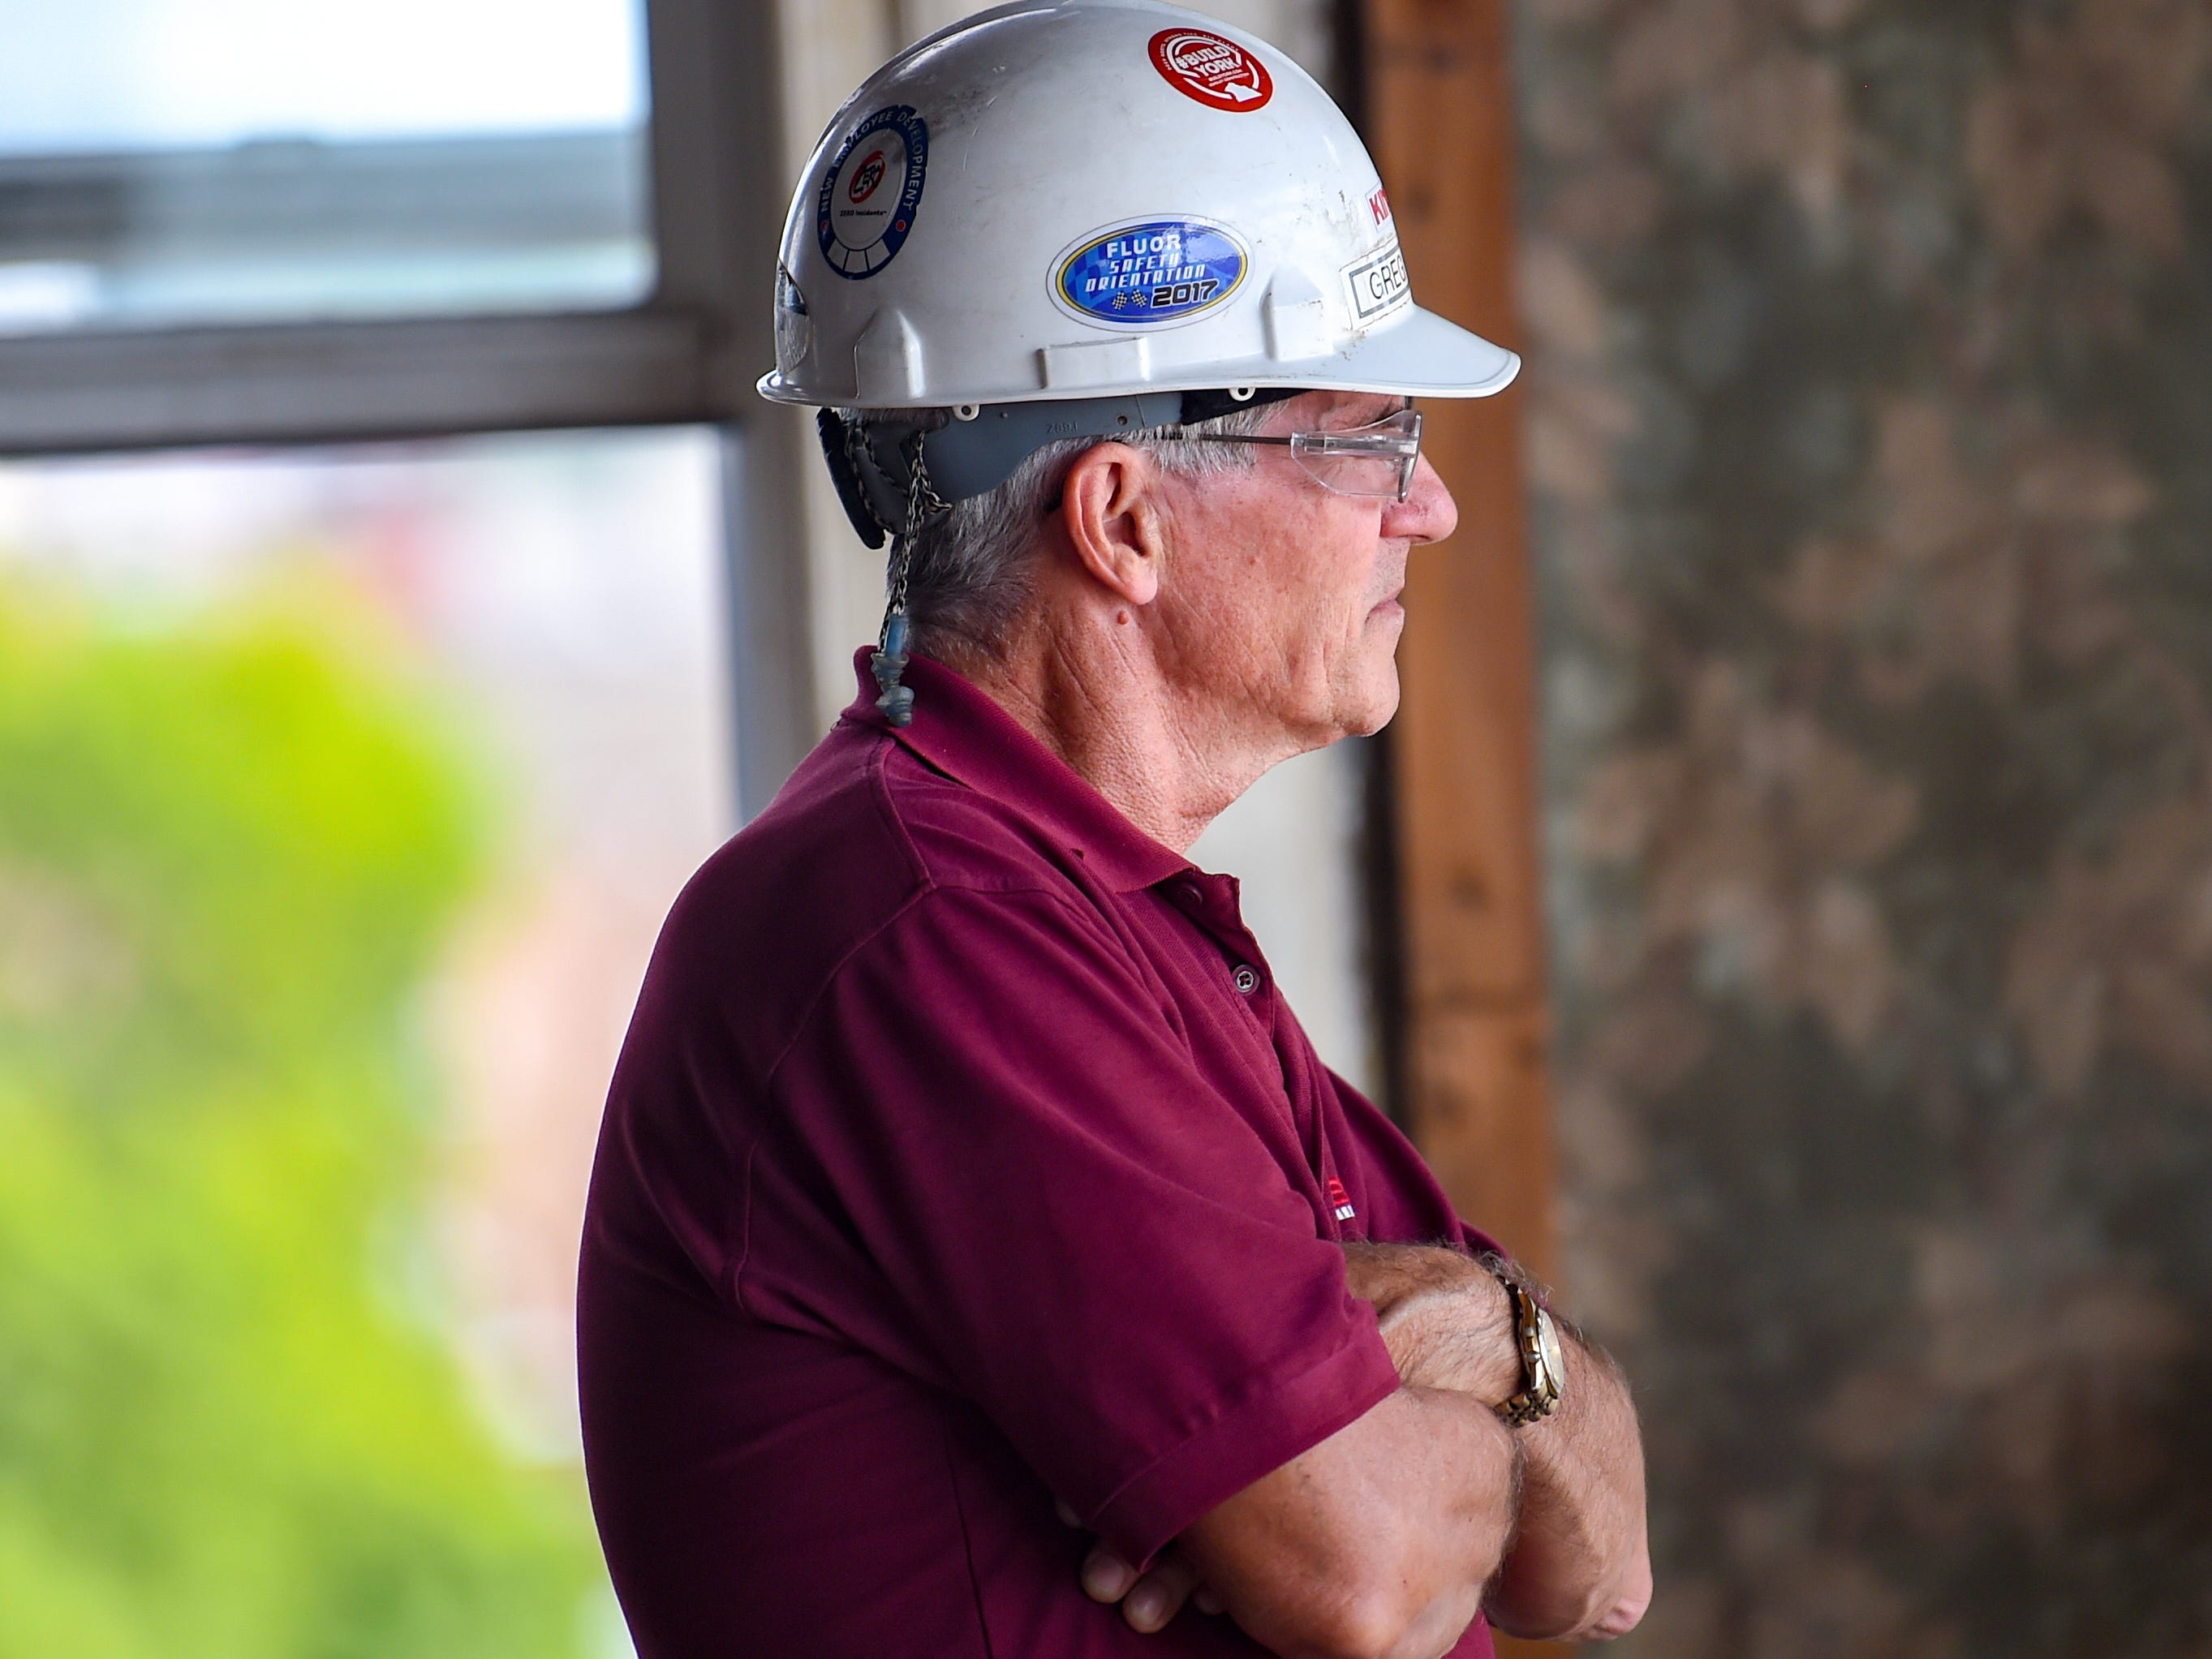 Safety supervisor Greg Hagan makes sure everything is running smoothly at the Yorktowne Hotel on October 4, 2018.